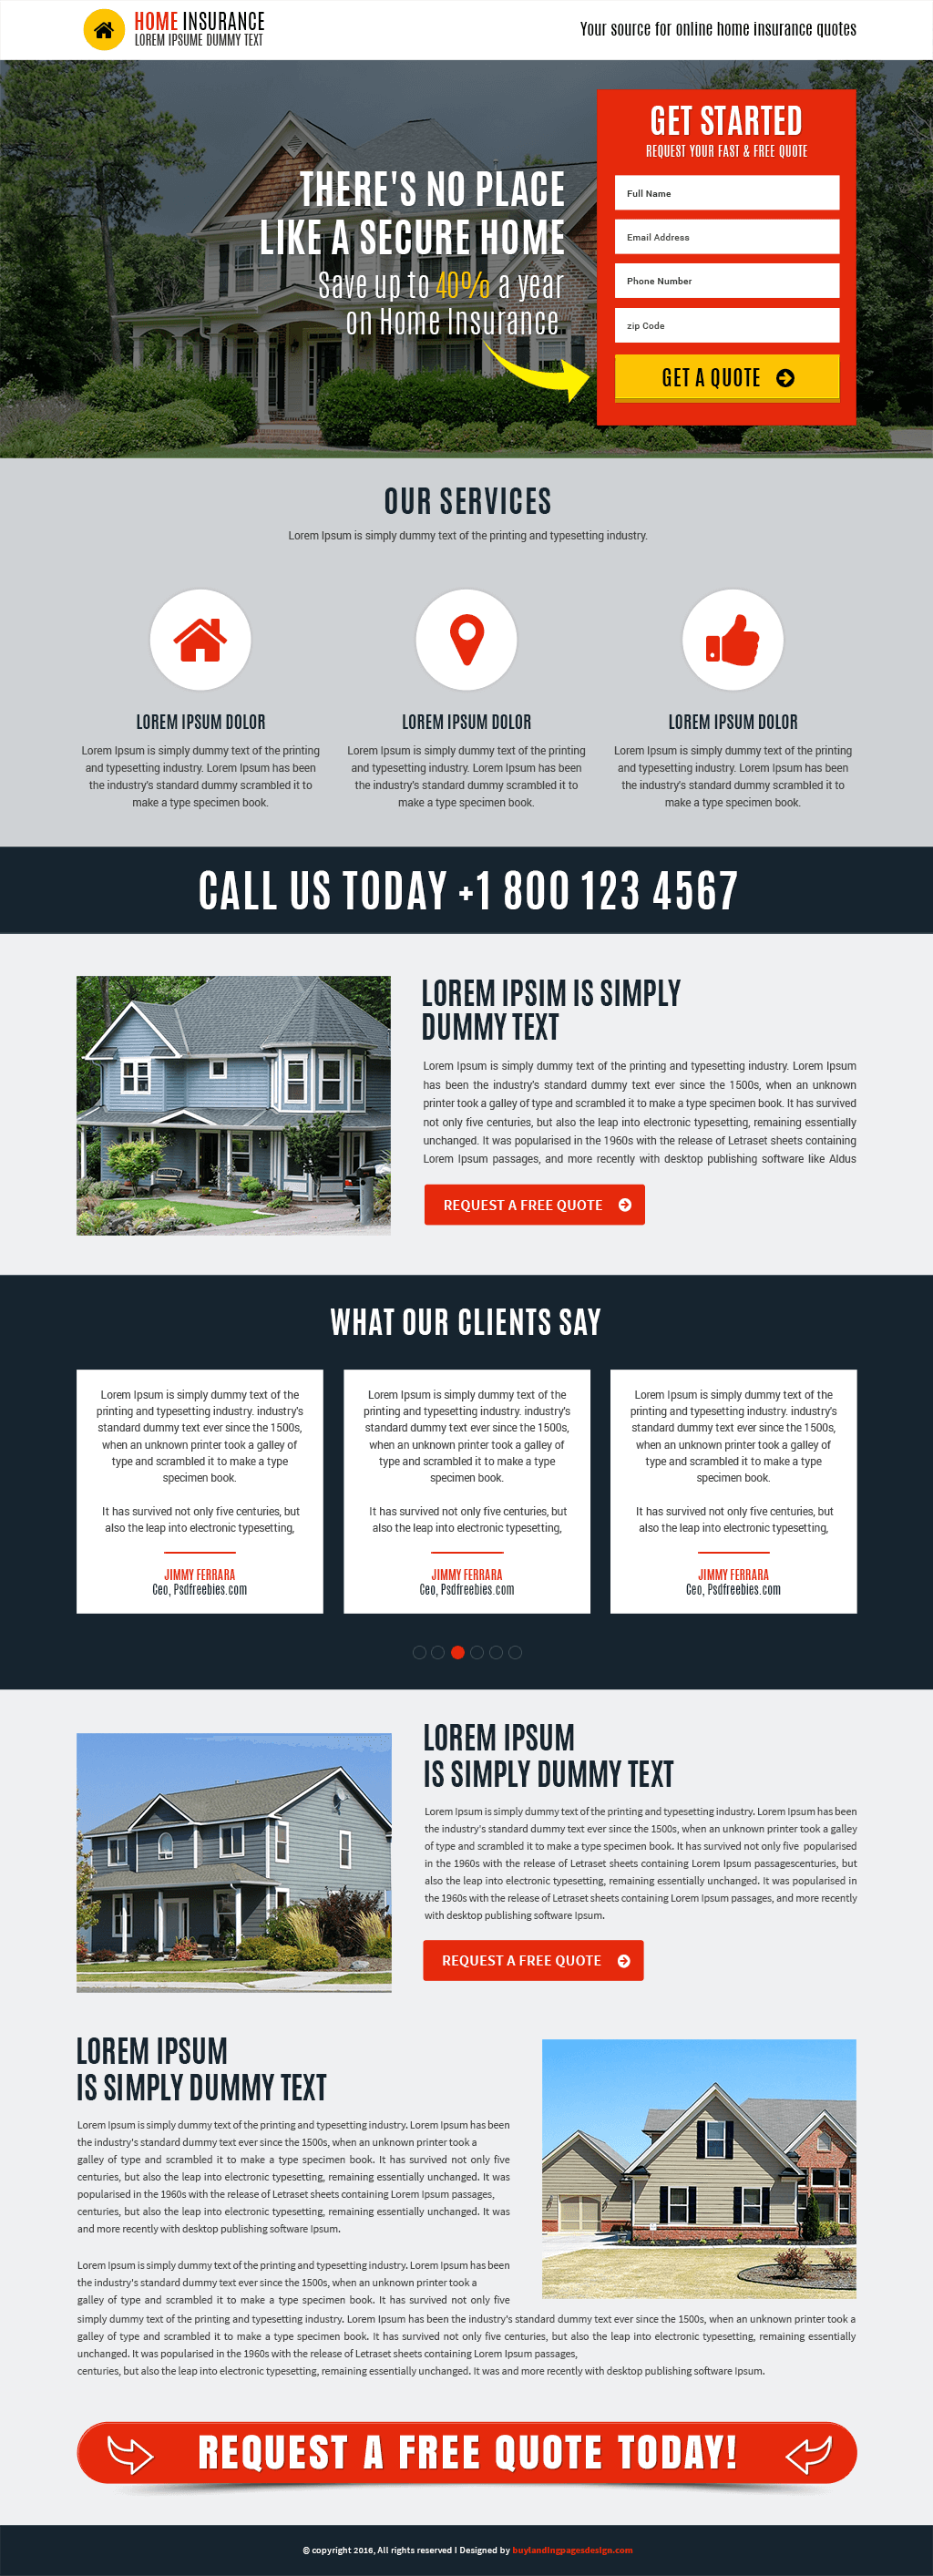 Home Insurance Responsive Landing Page Template